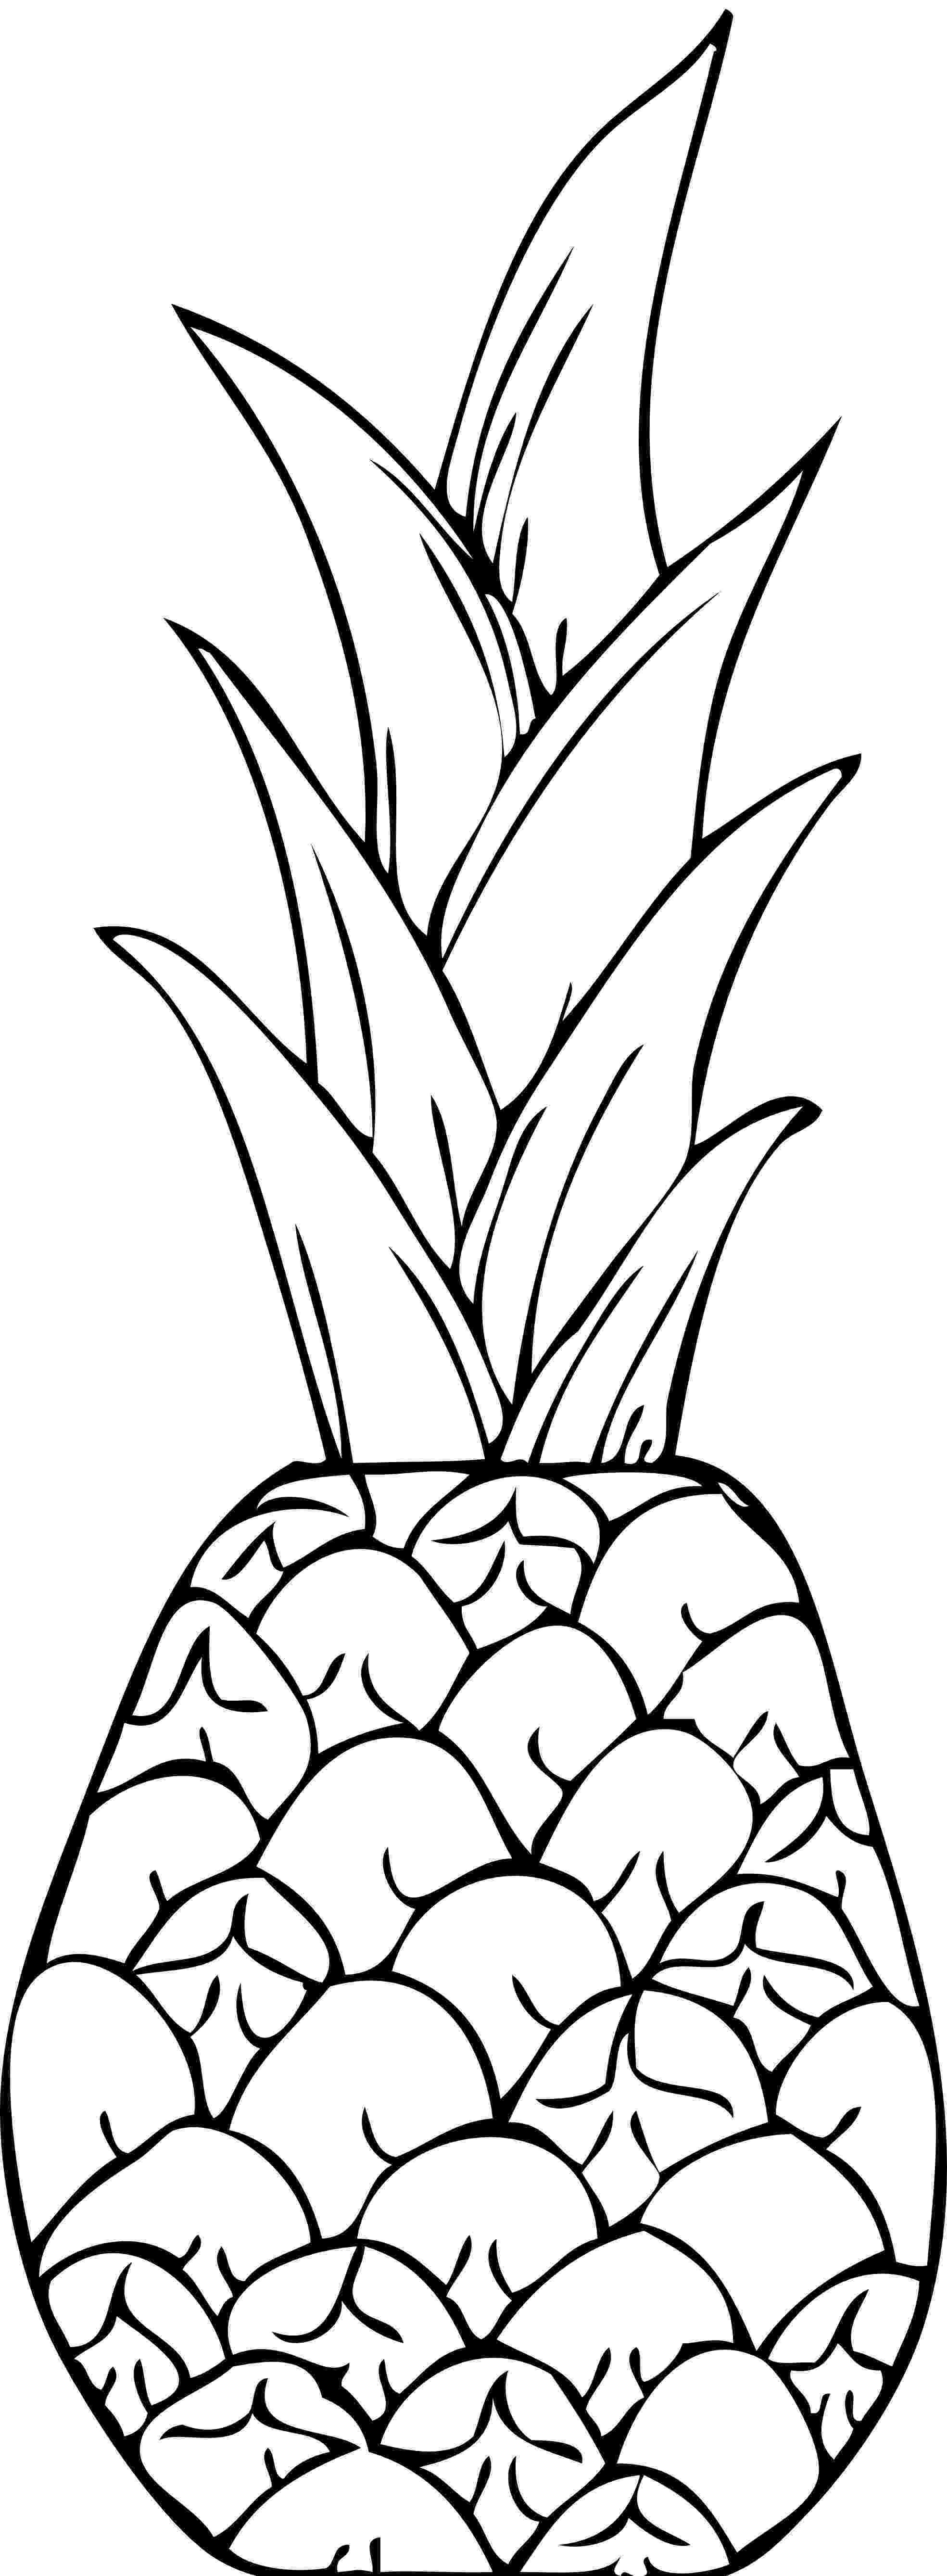 pineapple colouring picture pineapple coloring pages 360coloringpages colouring pineapple picture